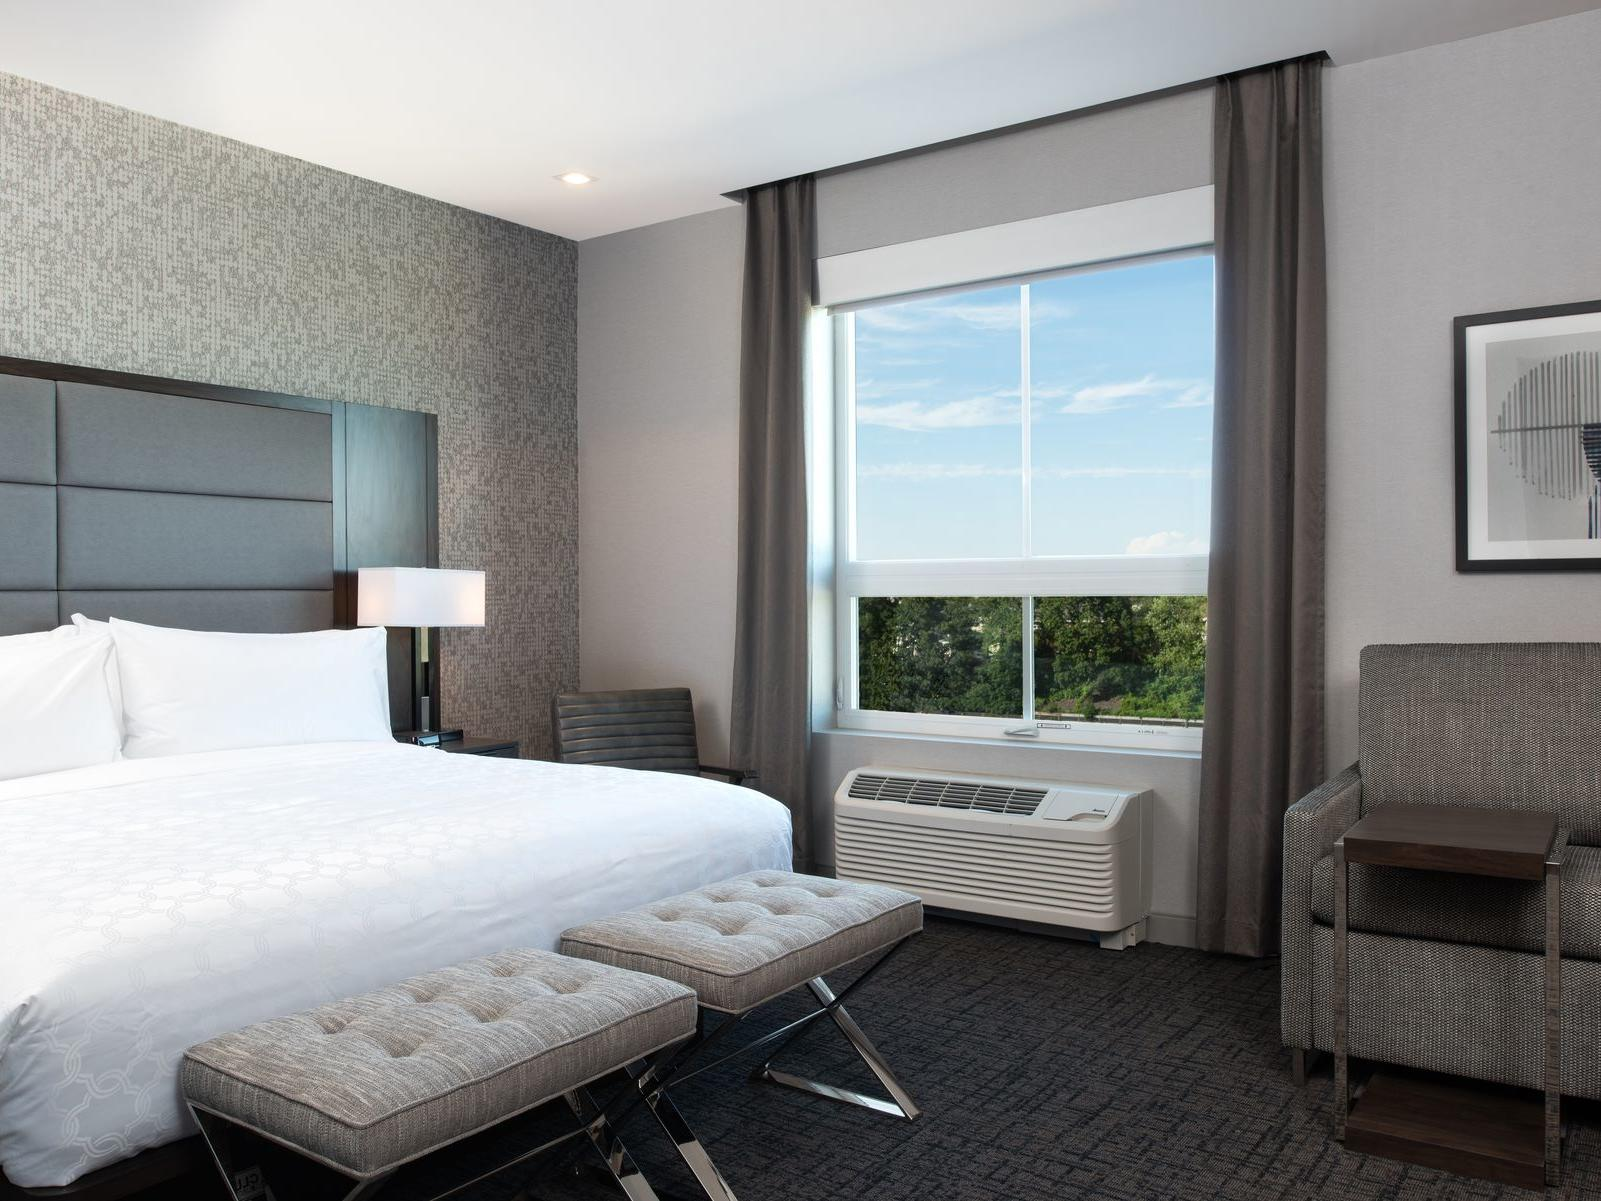 king bed next to window in modern hotel room